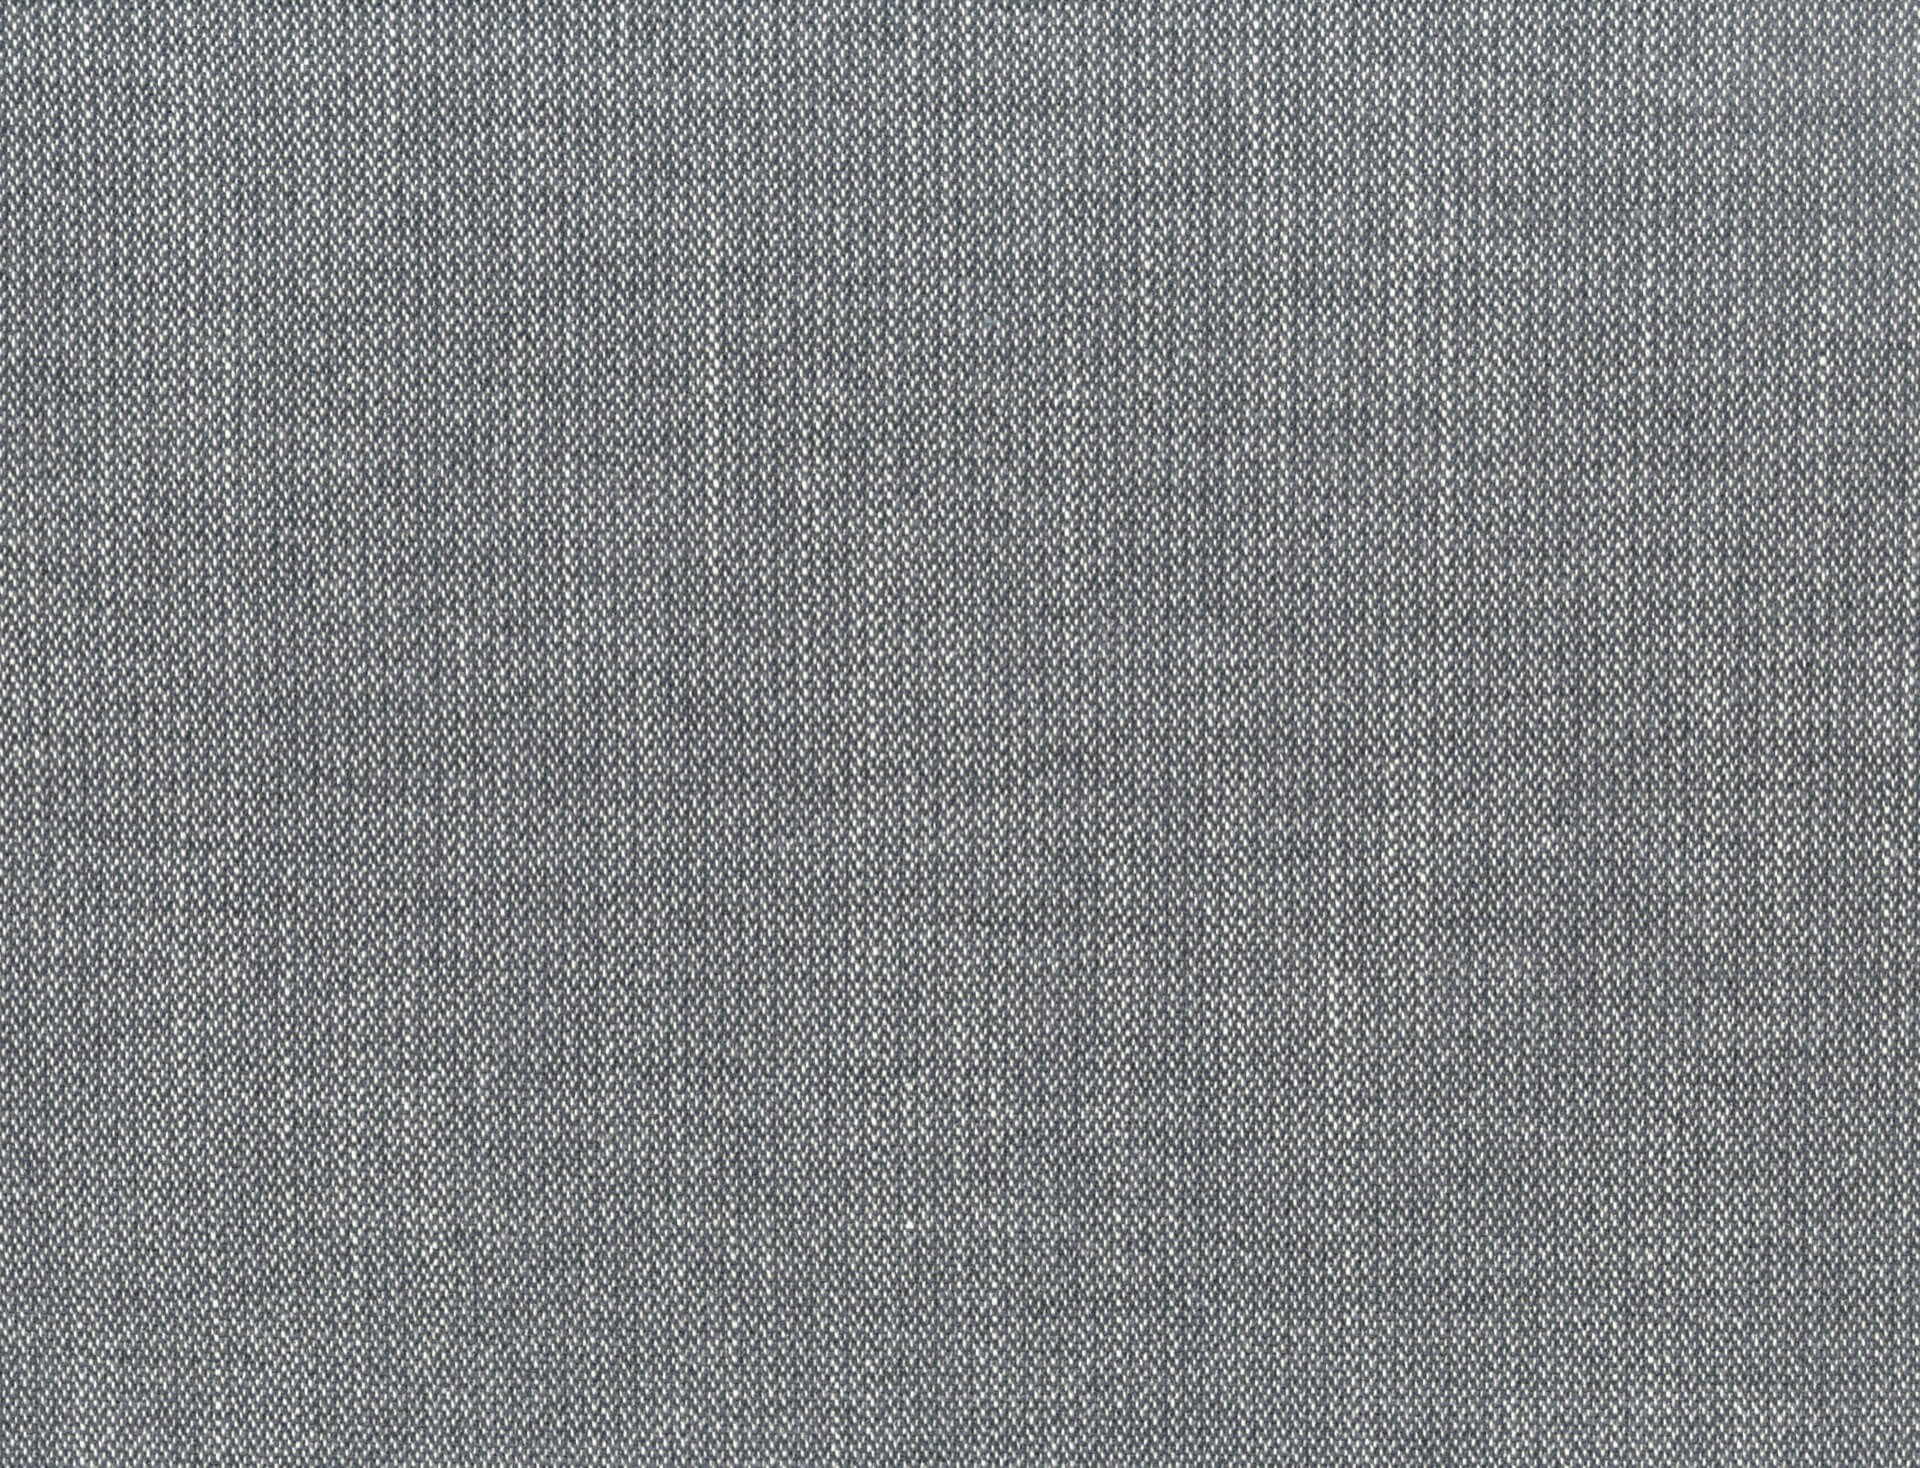 Nori Fabric Grey Beige